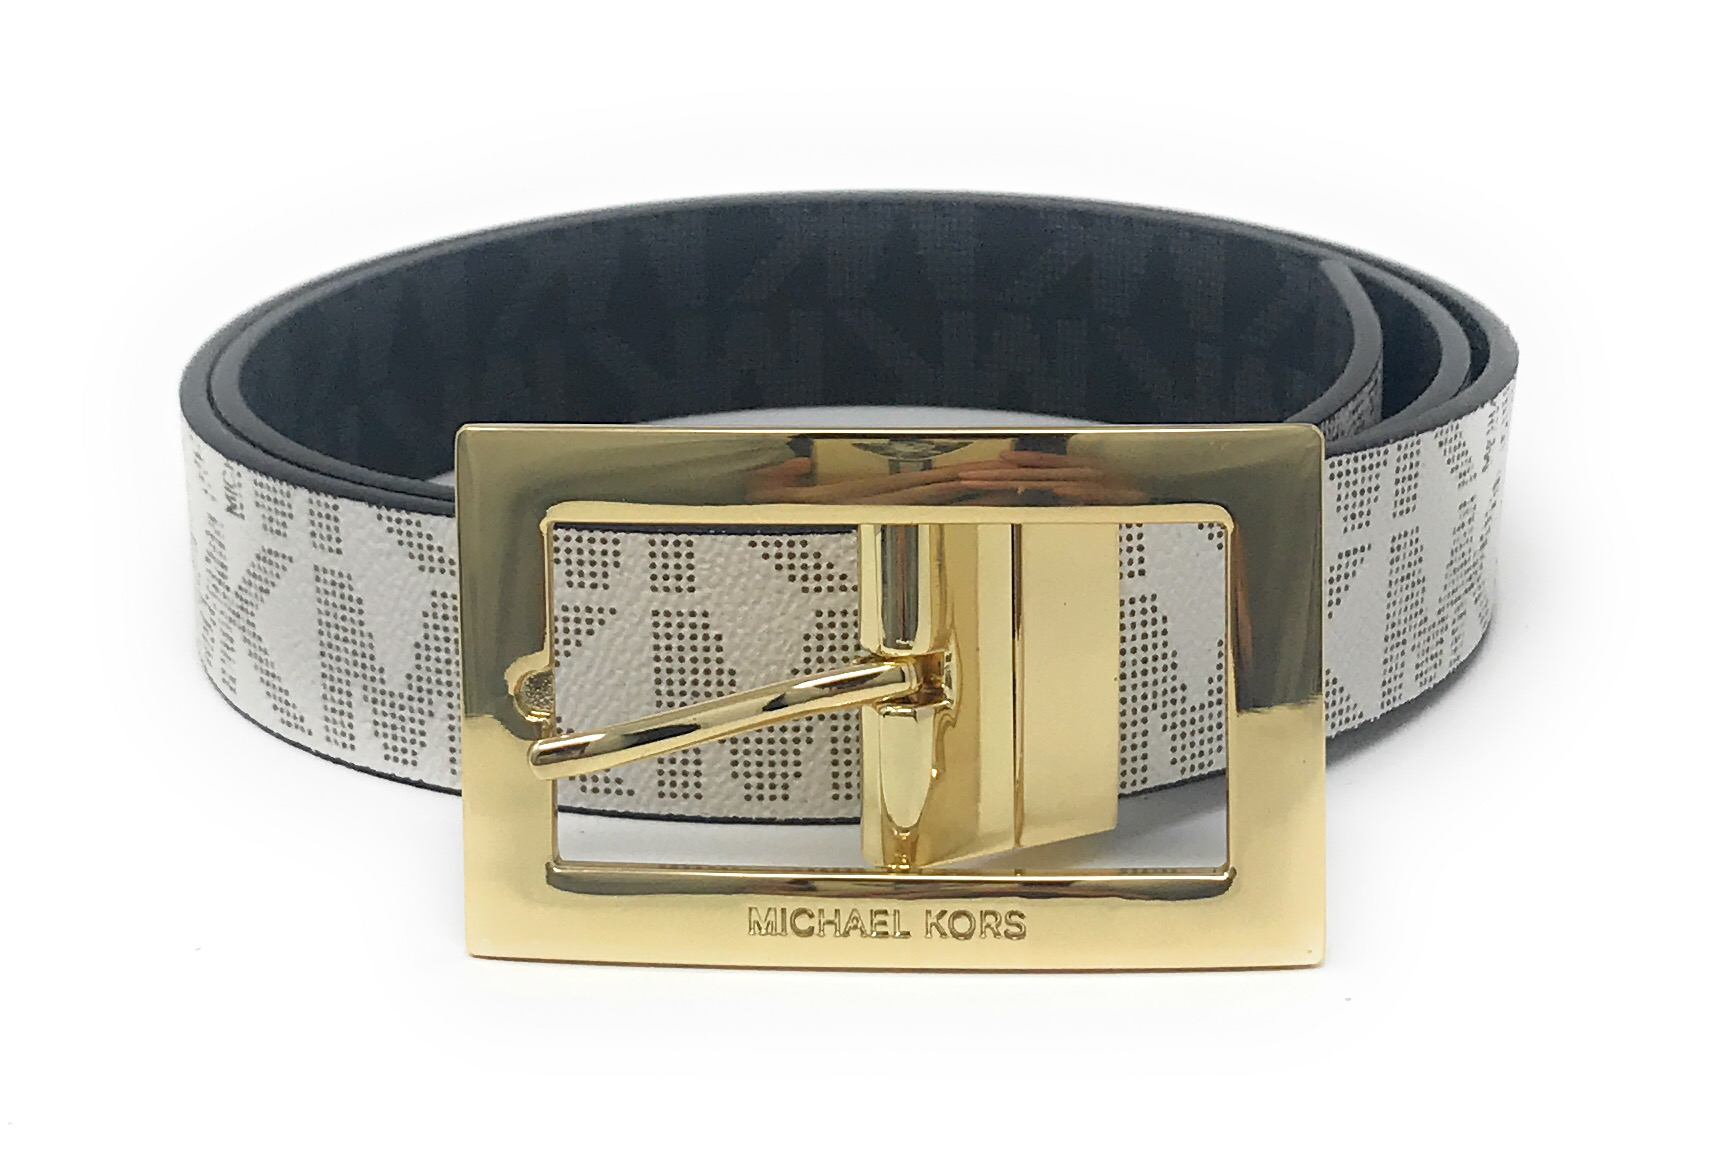 34bc8a0b706e ... get michael kors womens rectangle buckle reversible mk logo belt  551814c vanilla to black m ddb17